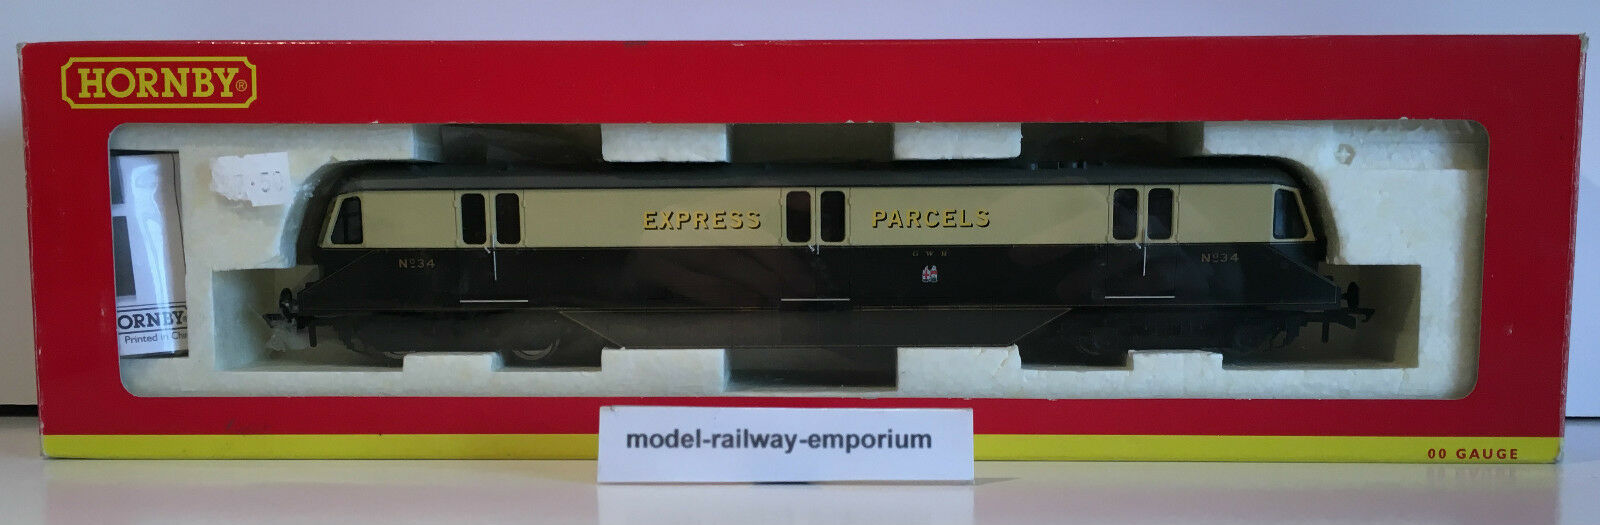 Hornby  R2876 - GWR DIESEL RAILCAR NO.34 USED BOXED - BARGAIN - DESIRABLE LOCO